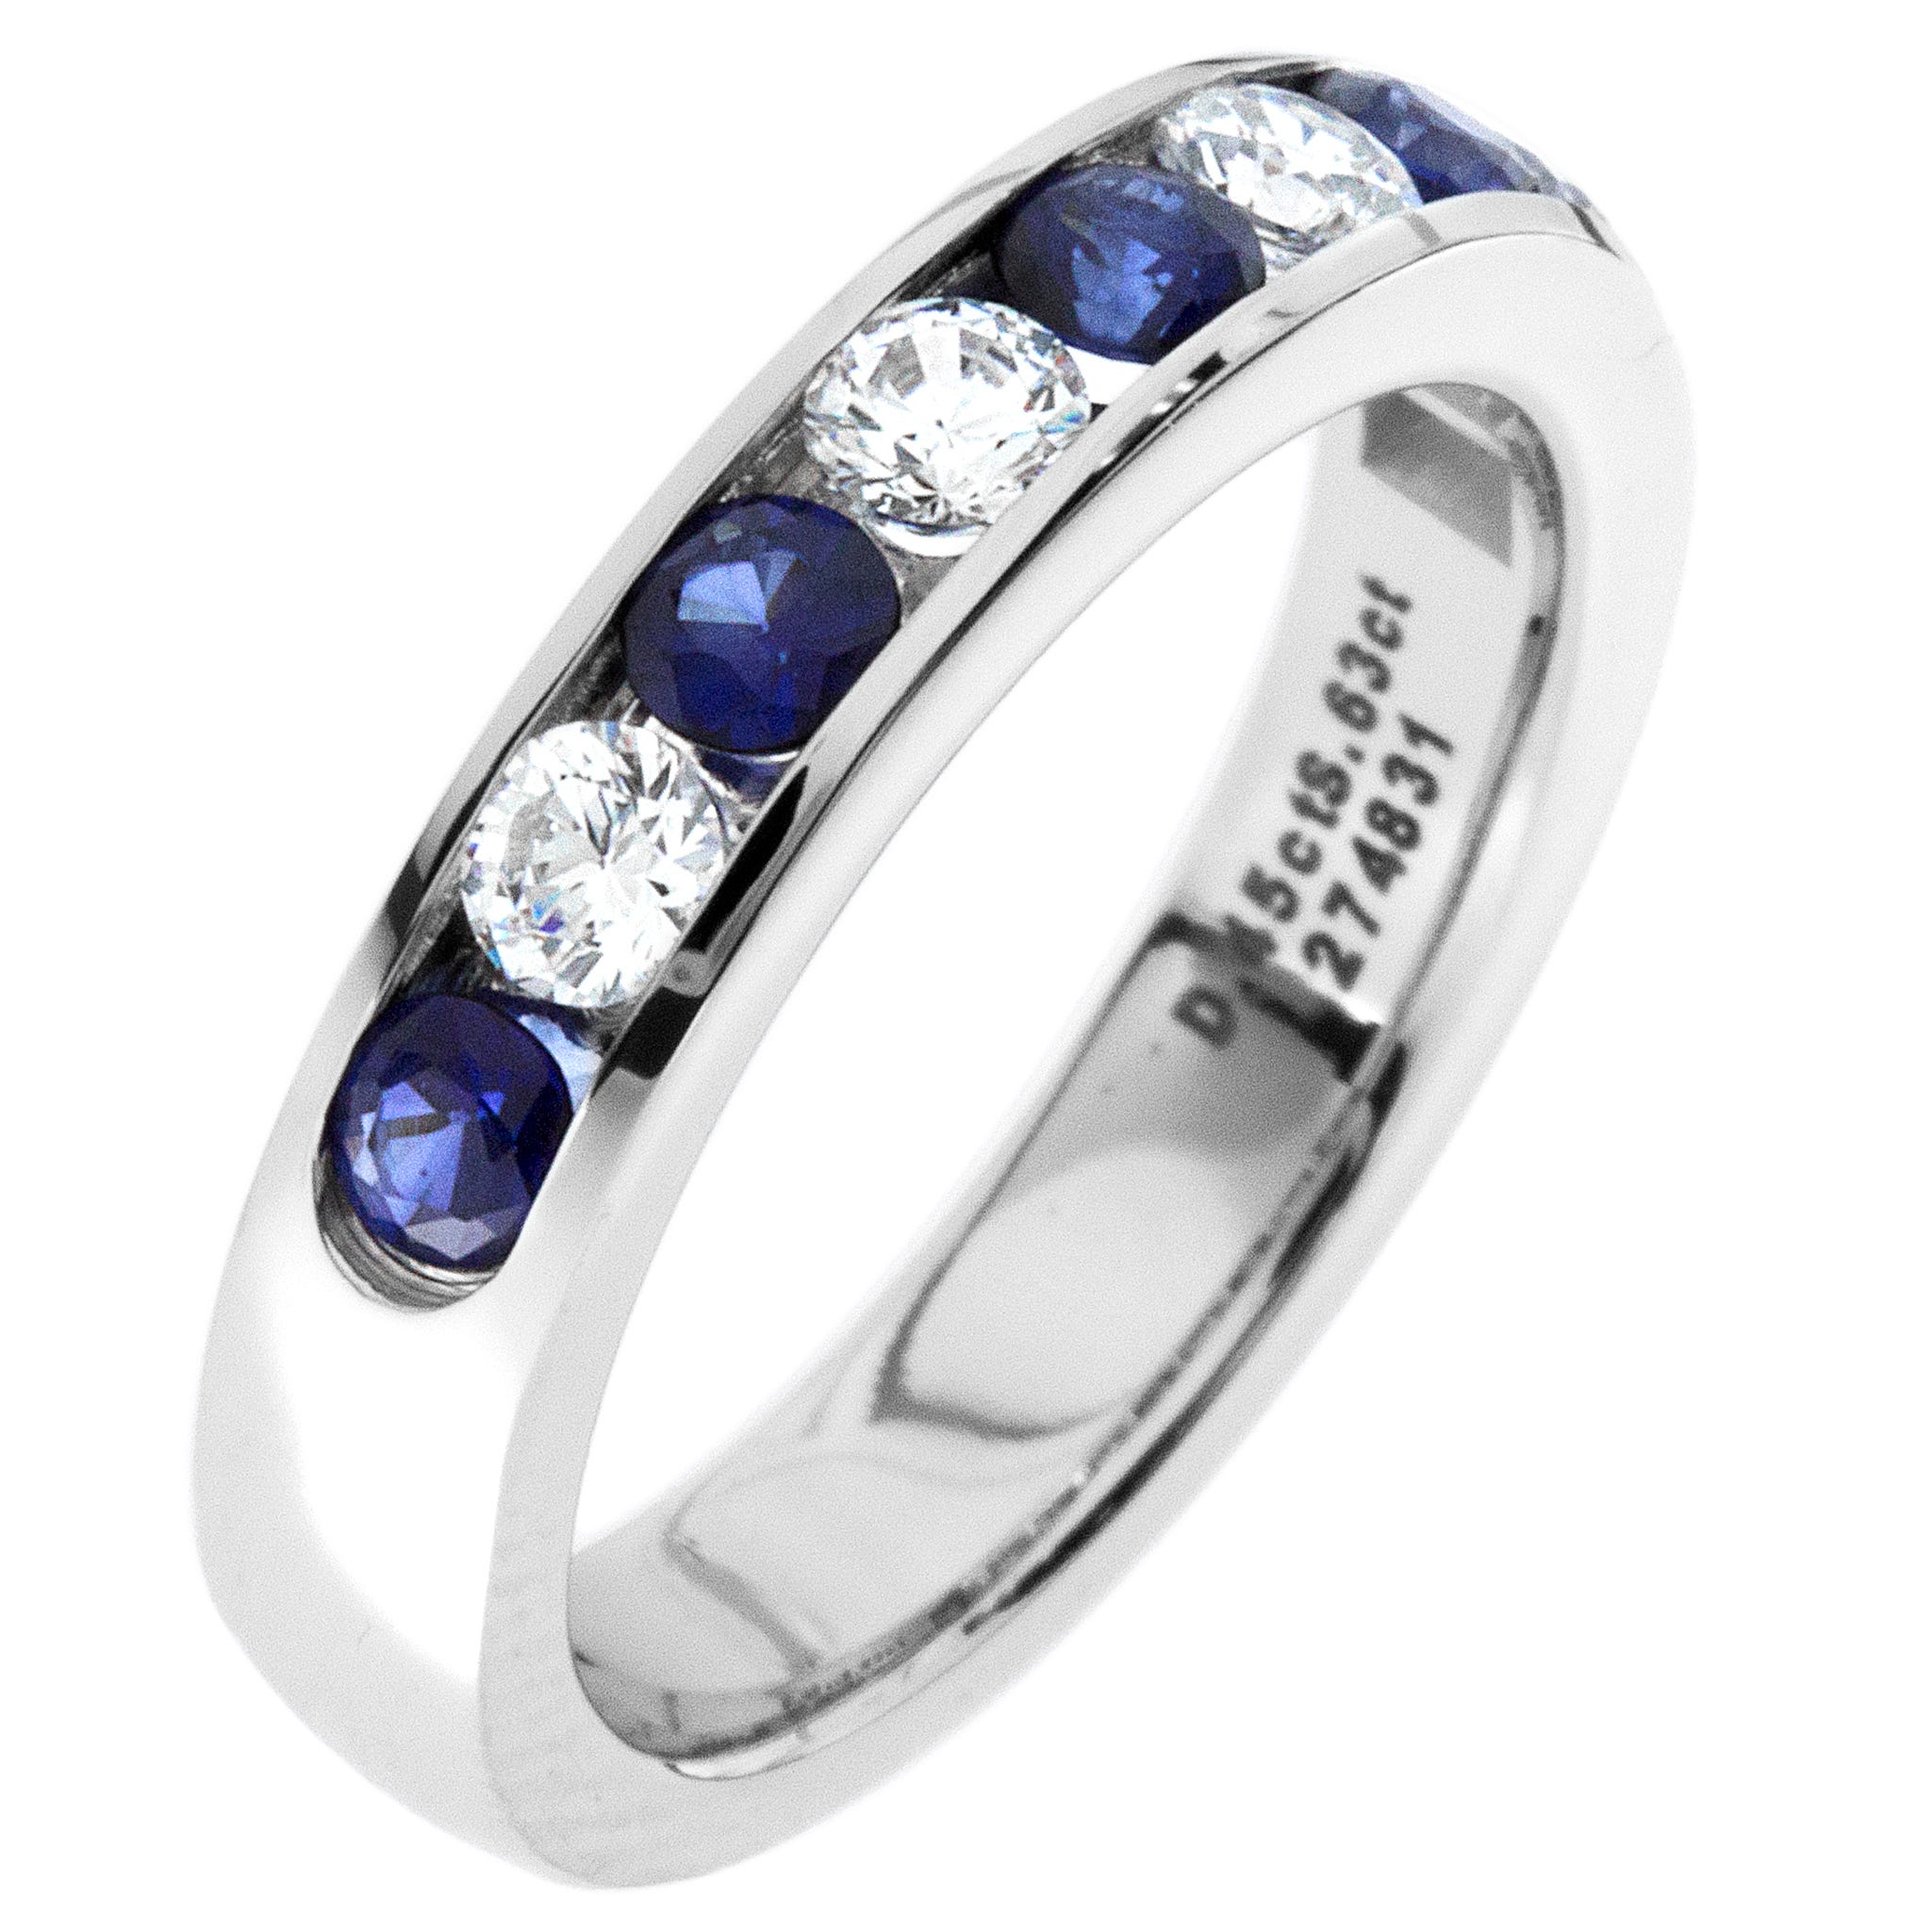 Diamond & Sapphire Channel Set 0.60ctw. Band in 14k White Gold